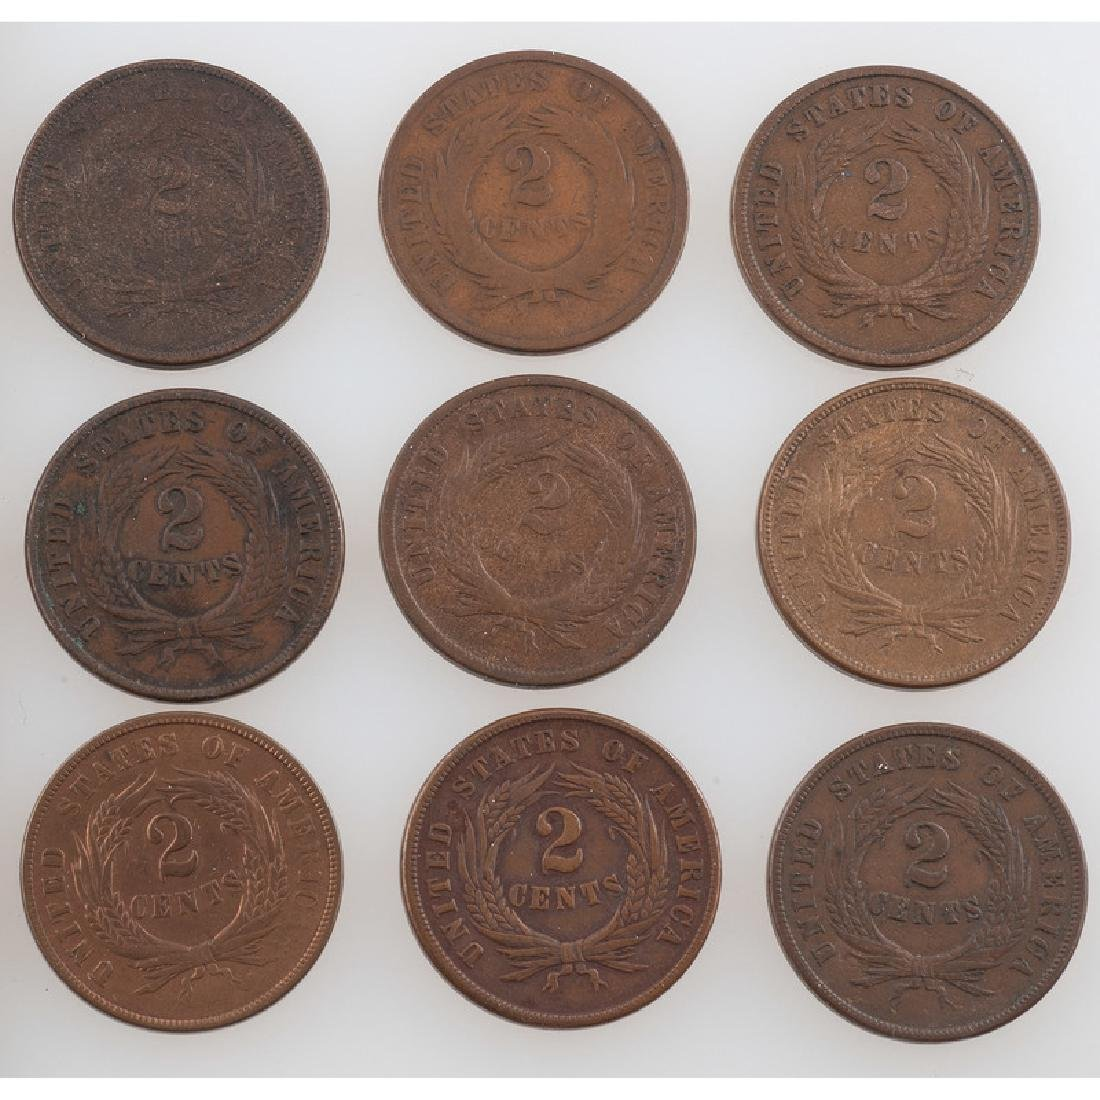 United States Two Cent Pieces 1864-1871 - 2